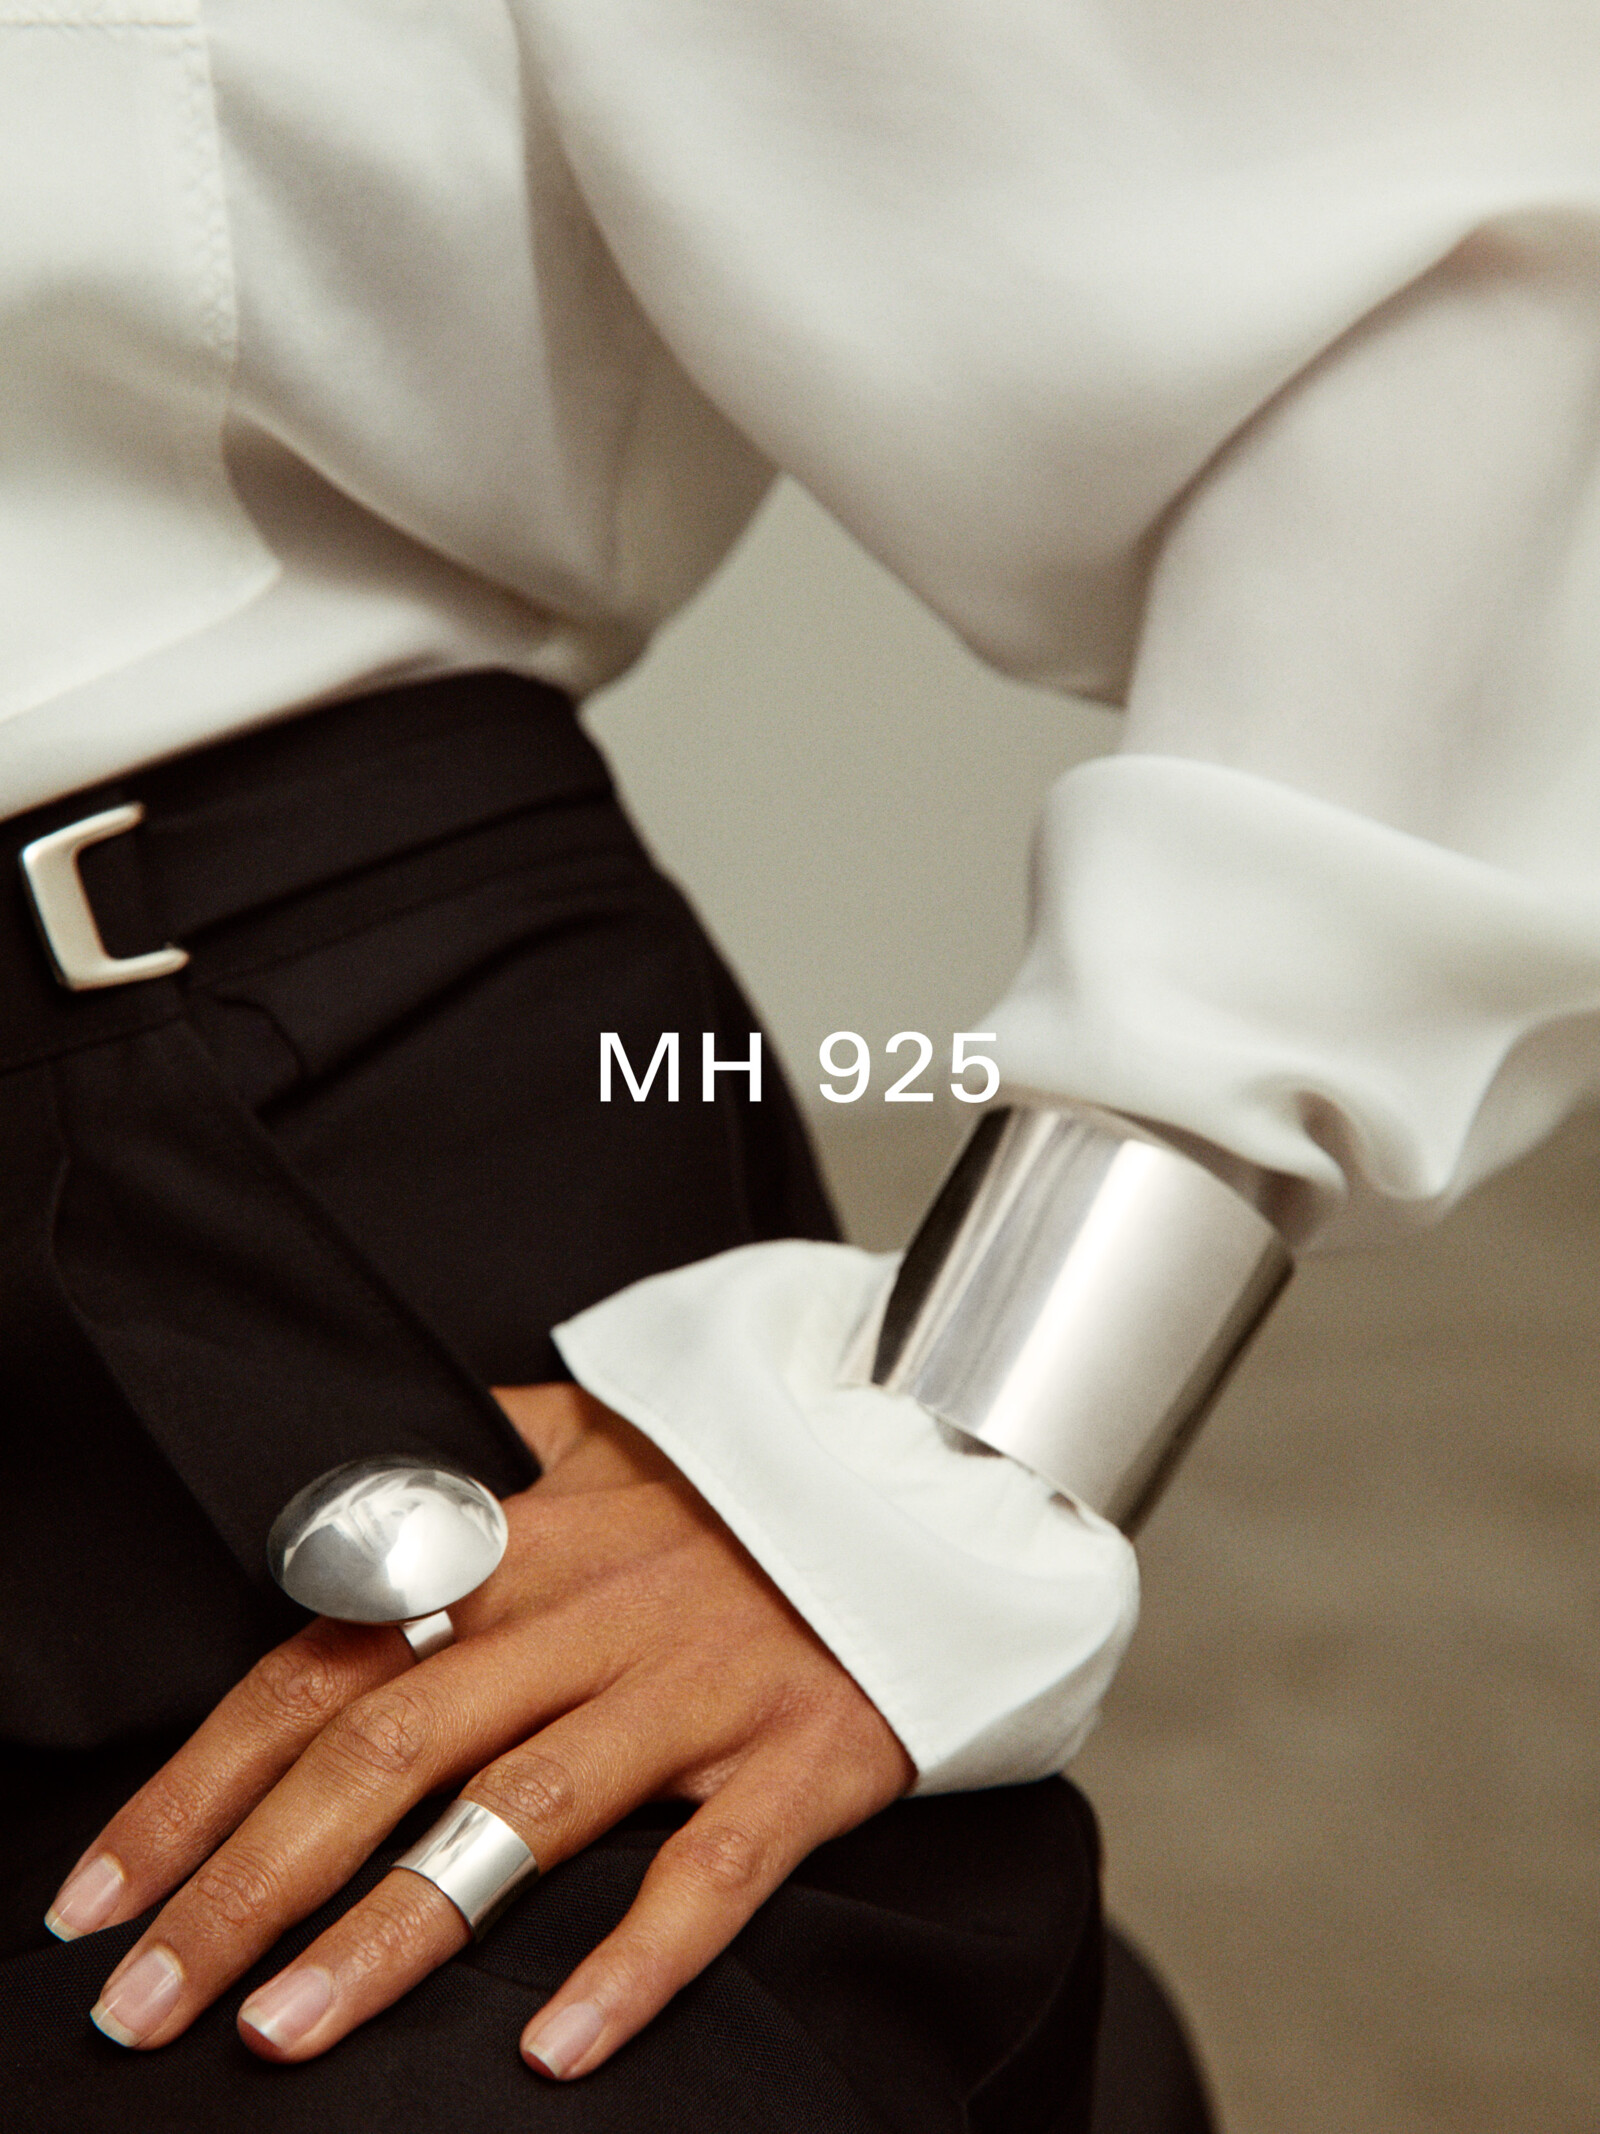 MH 925 images14